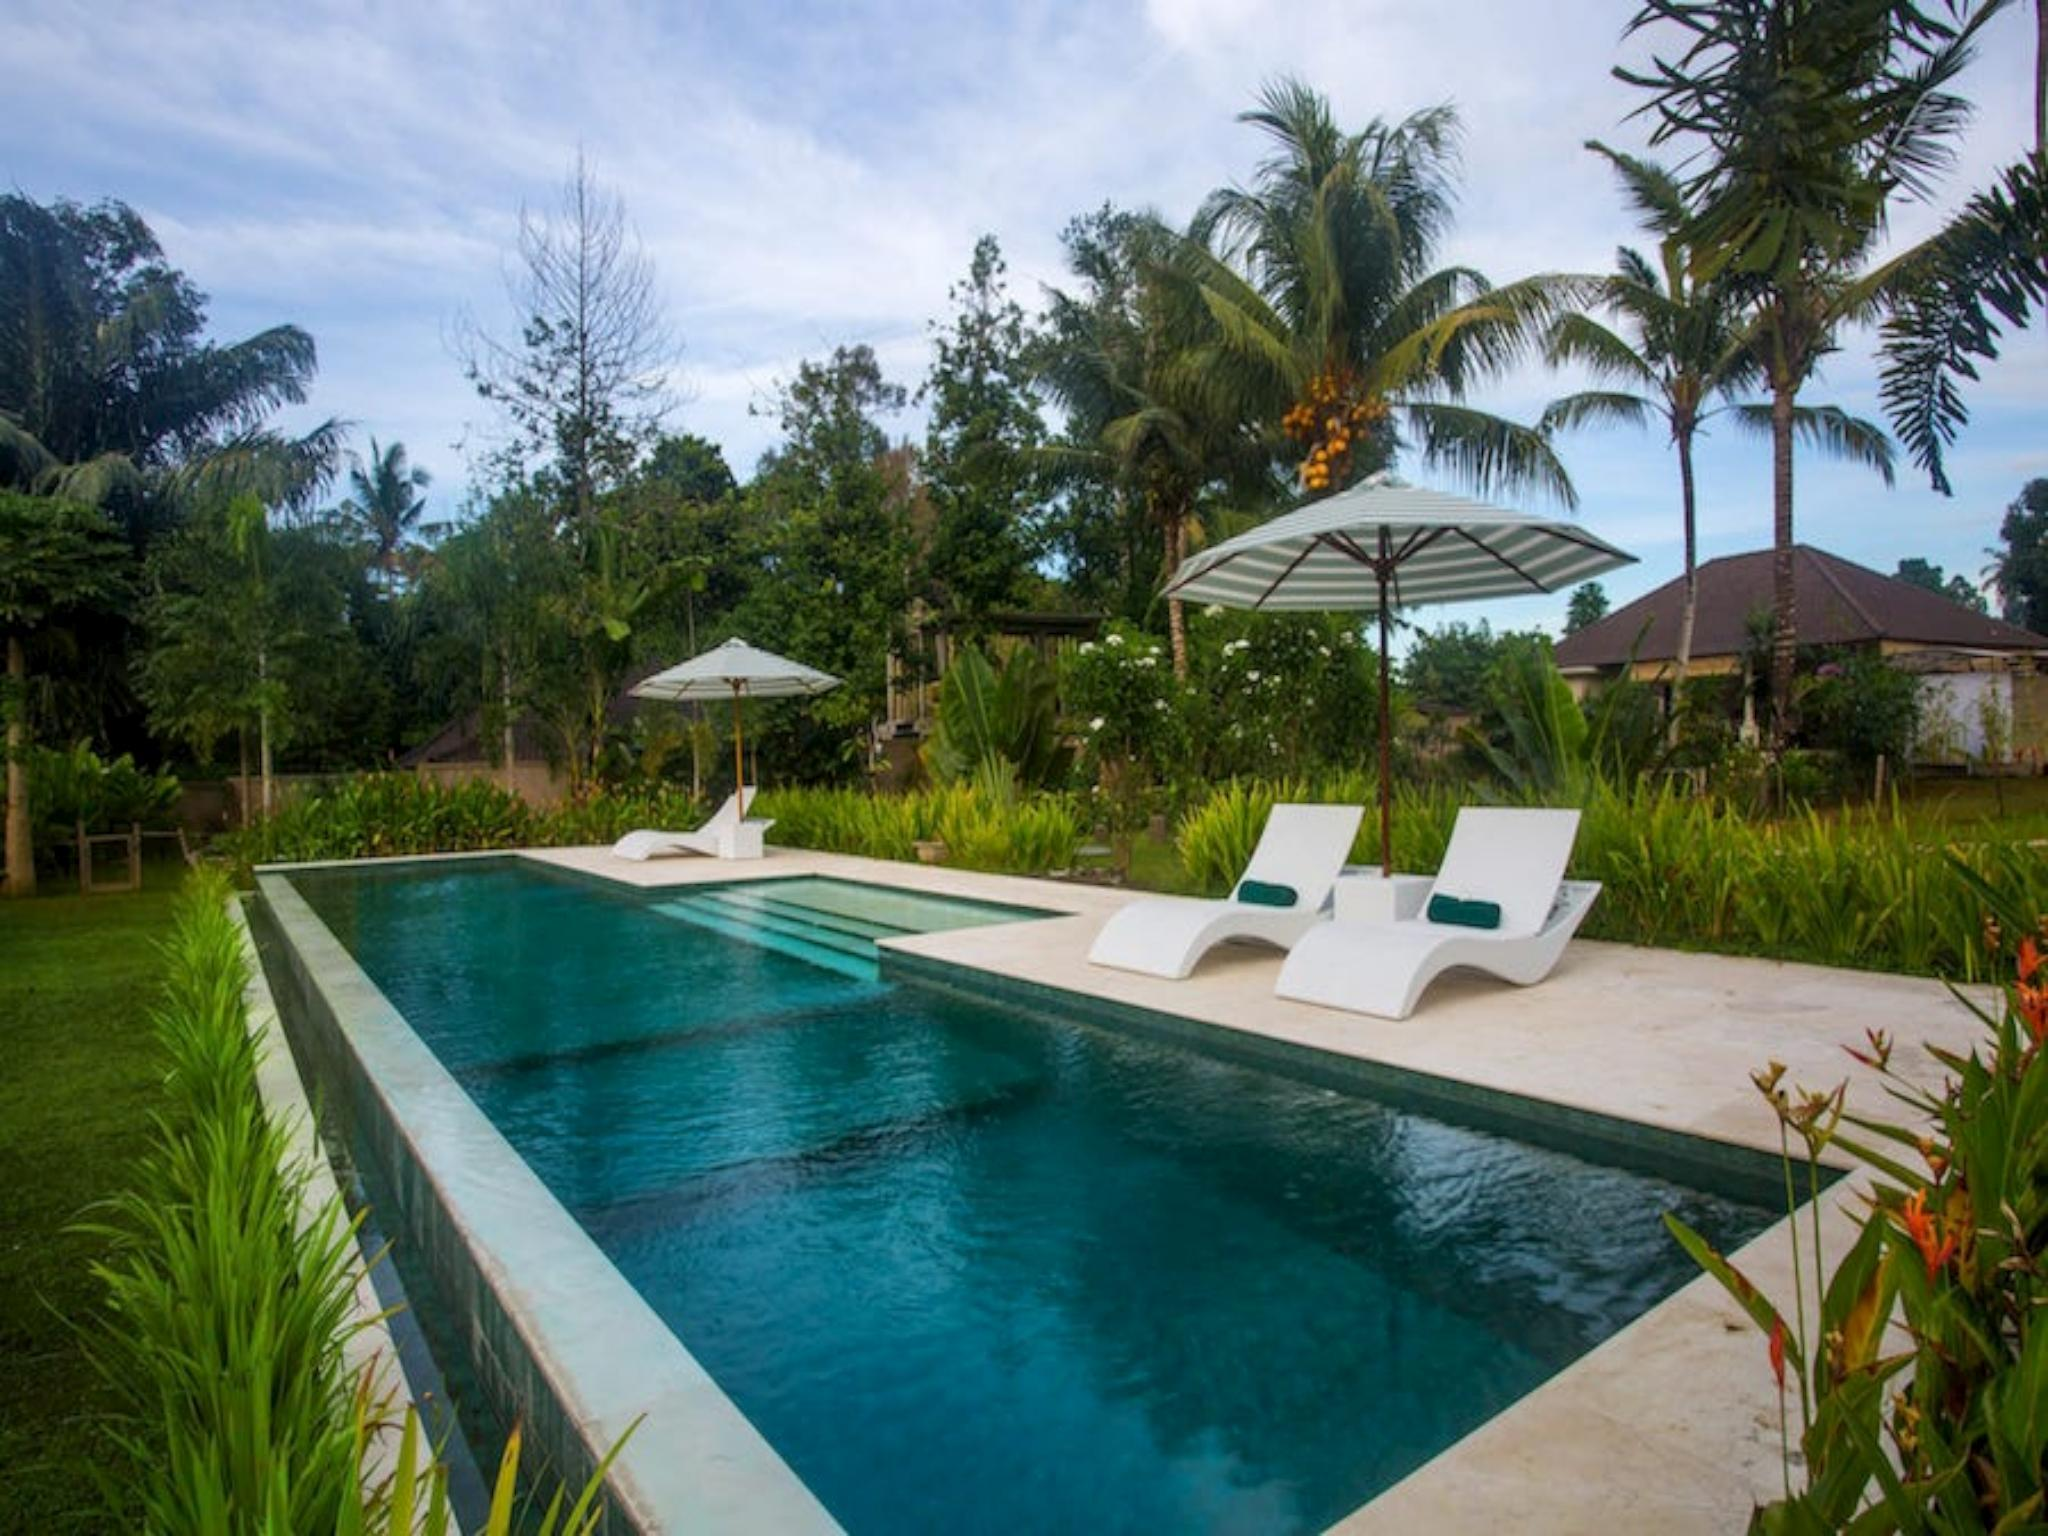 Vista garden villa 1 bed large pool central Ubud